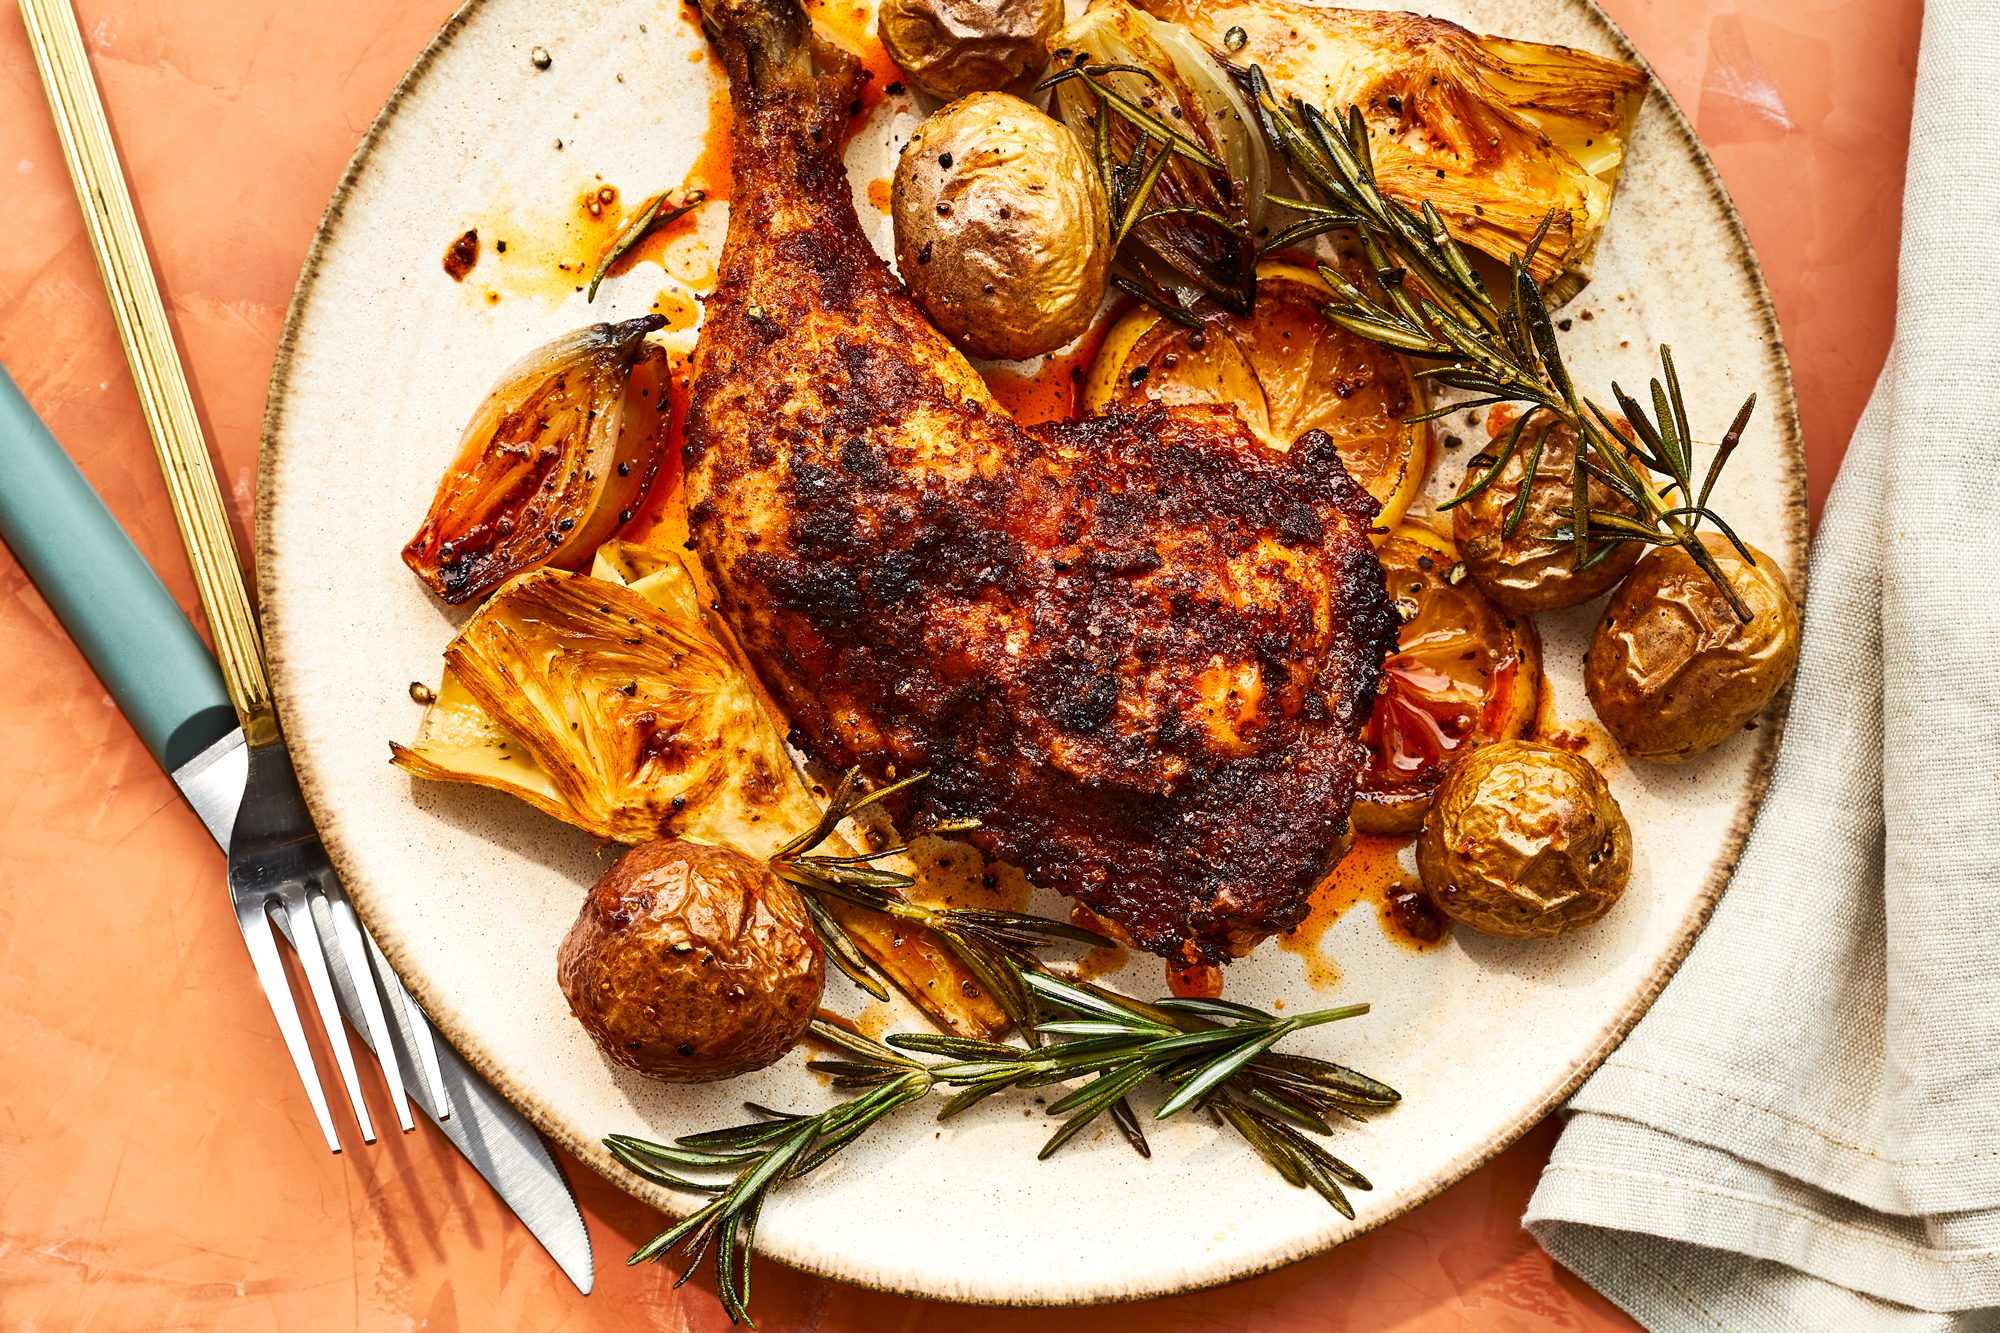 Rosemary Roasted Chicken with Artichokes and Potatoes